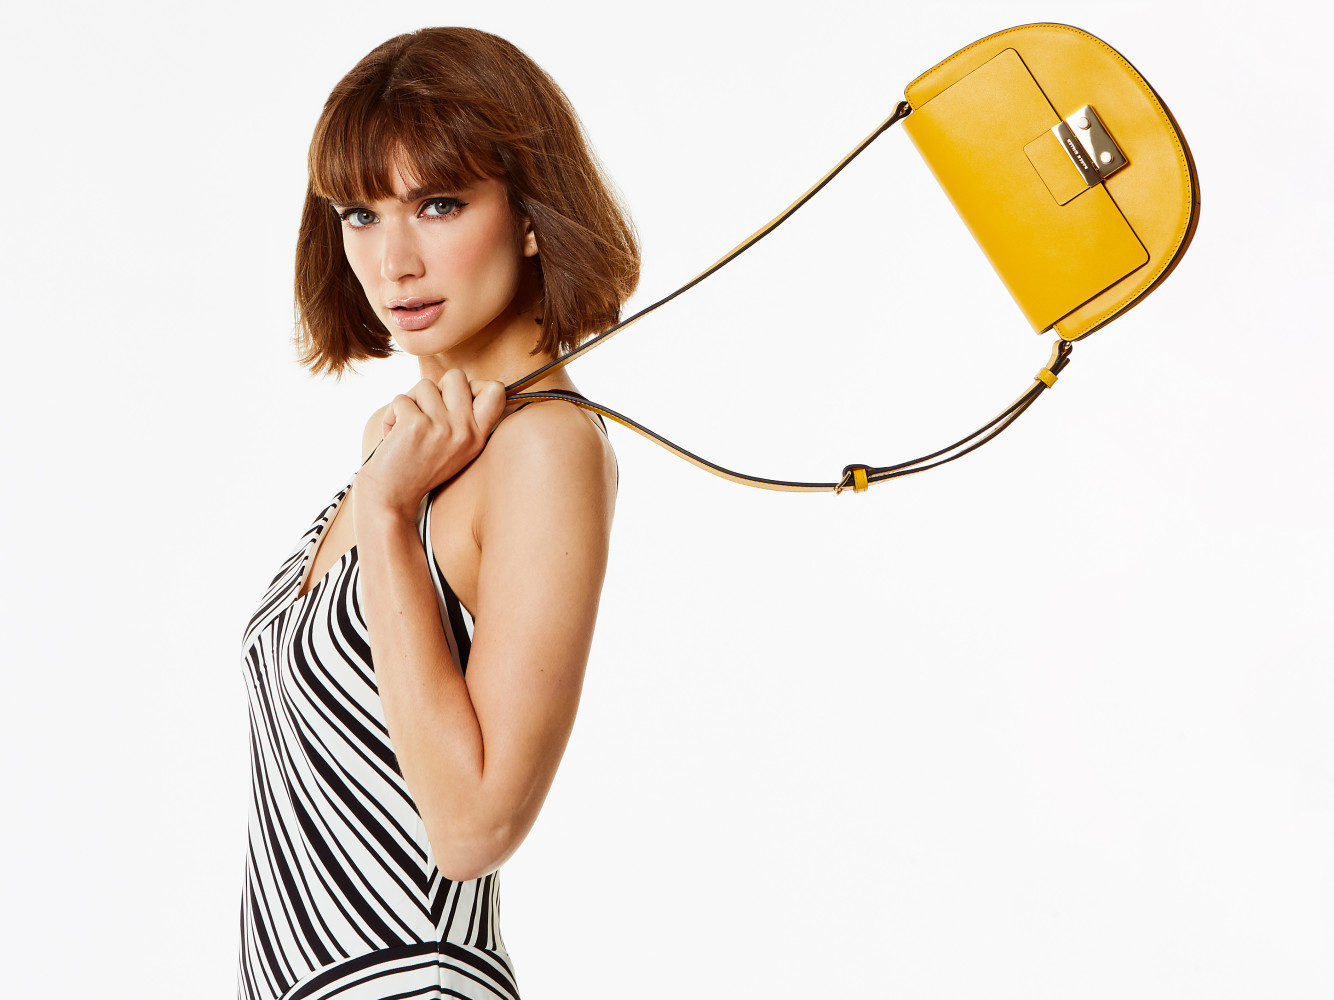 Rebecca in a new campaign for Karen Millen